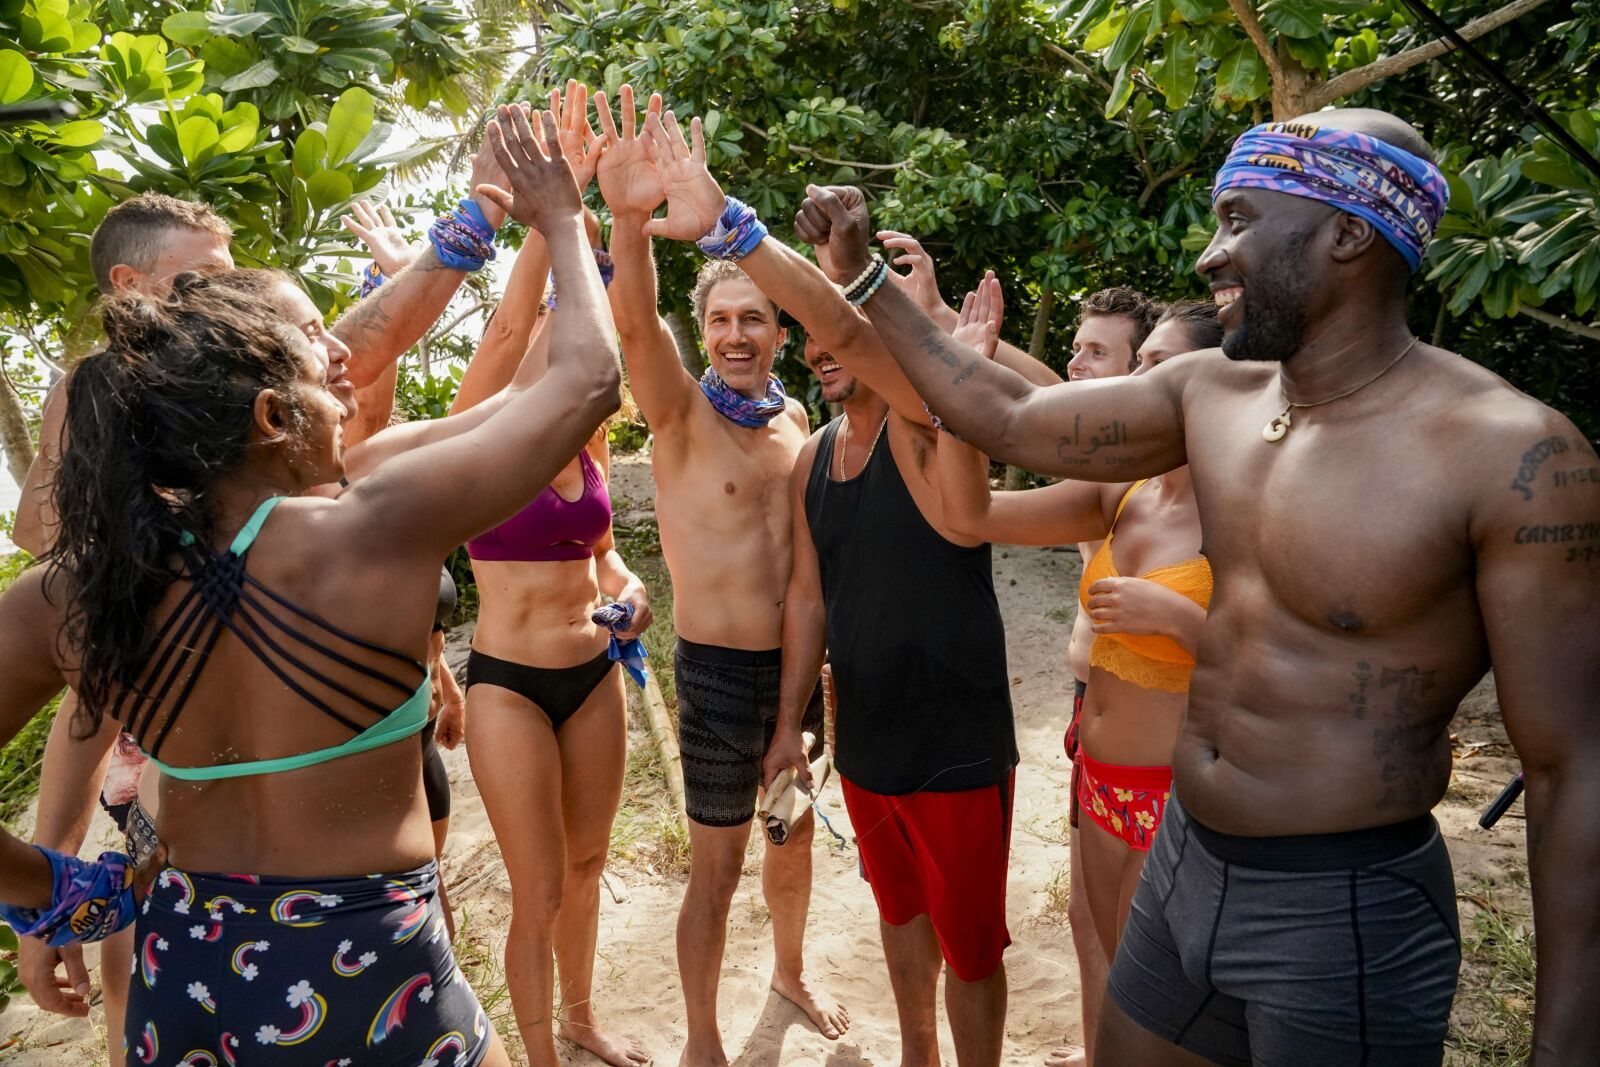 Survivor Winners at War: Player relationships that will impact the game